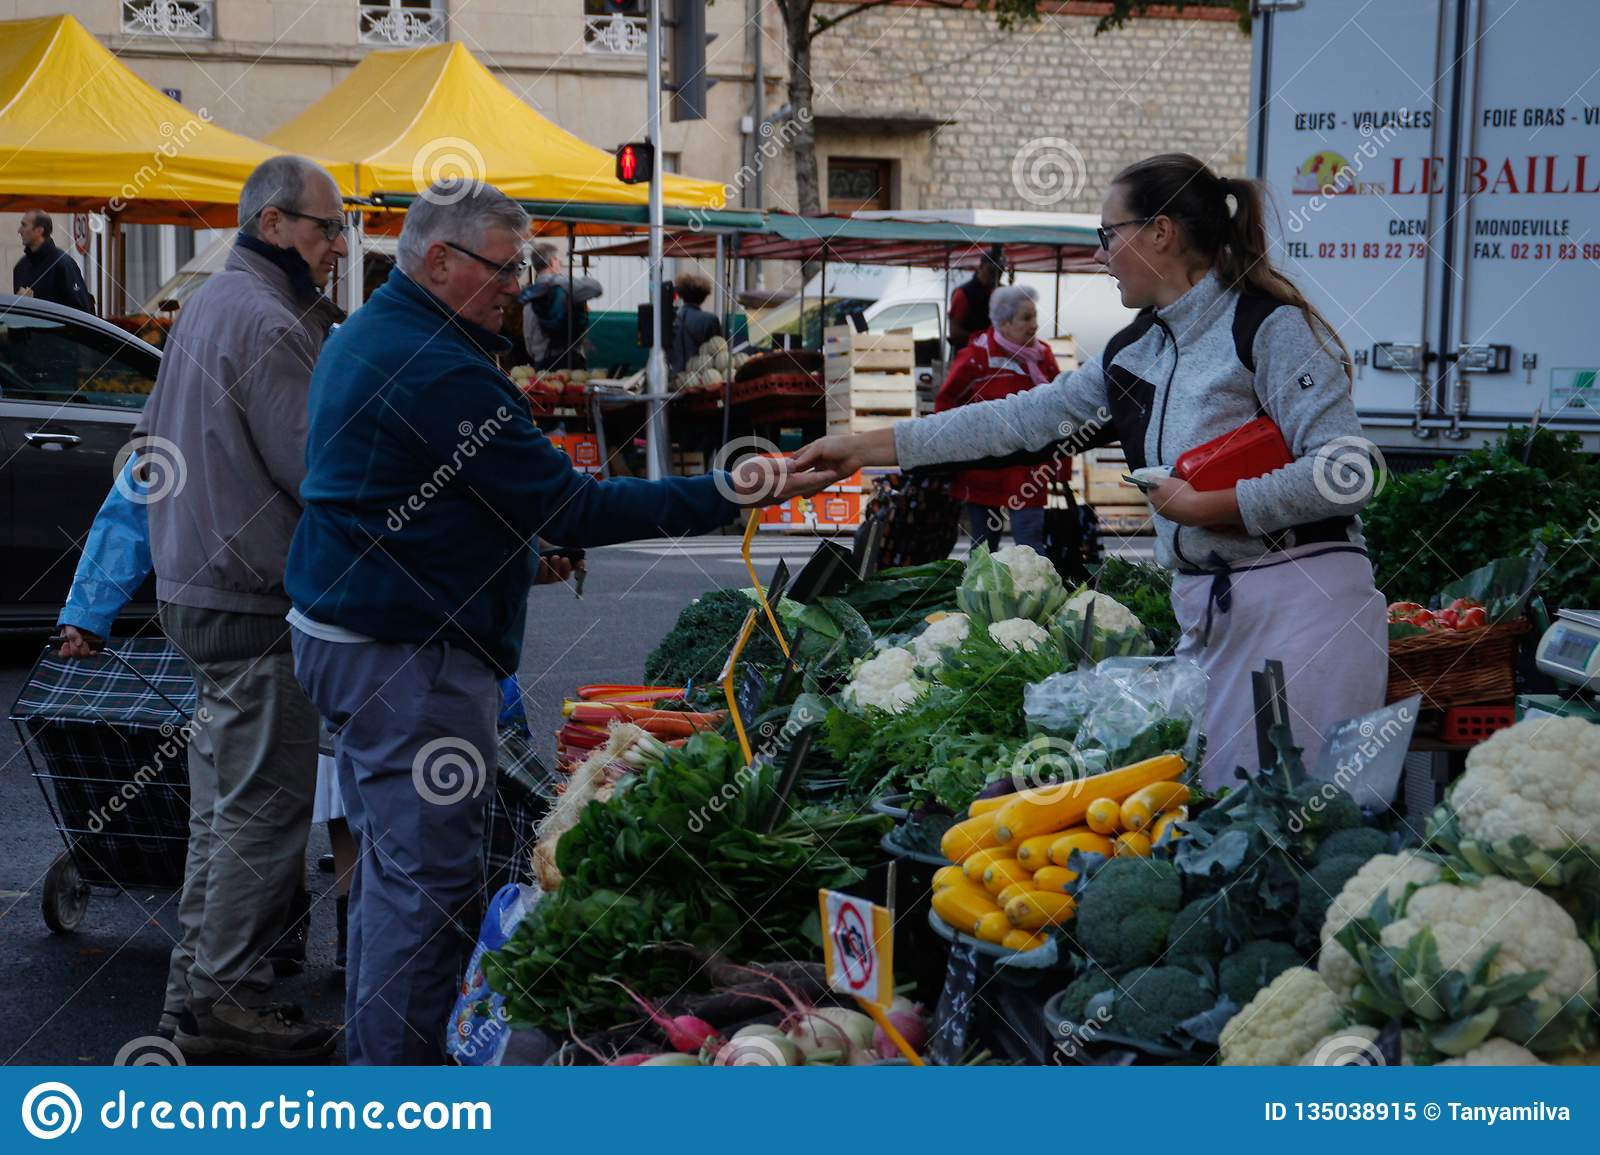 A morning street market in the city center with fresh farm vegetables